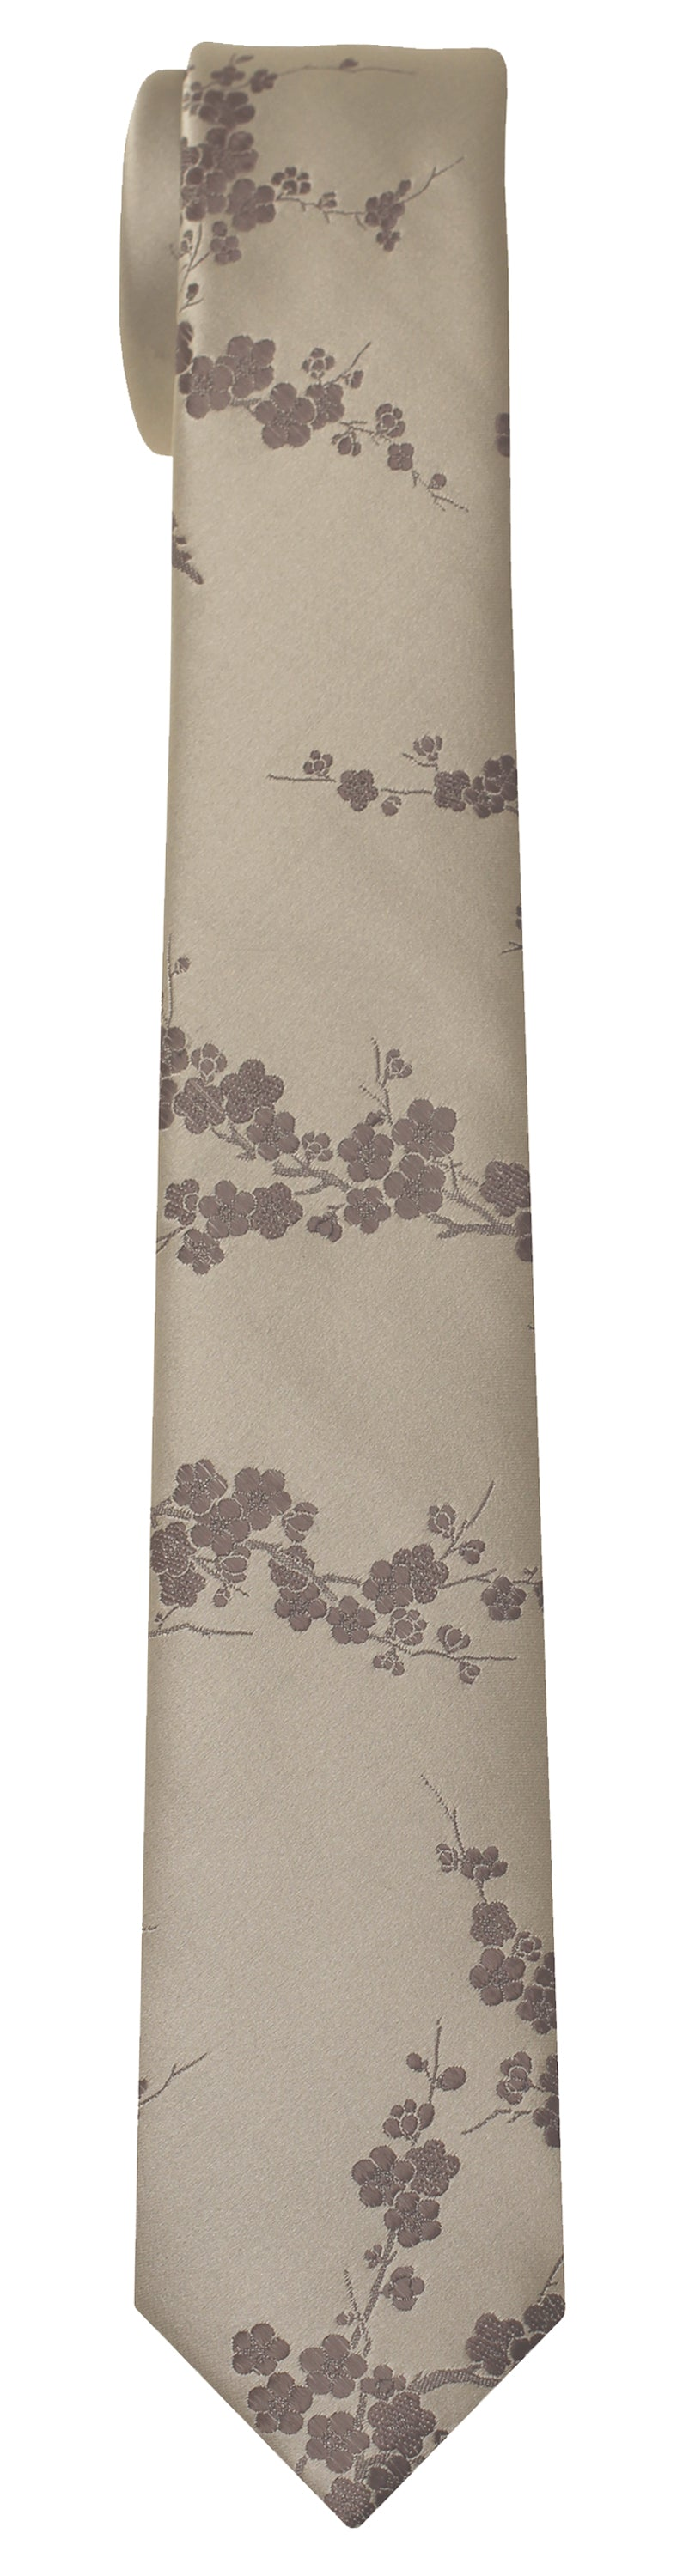 Mimi Fong Cherry Blossoms Tie in Pewter